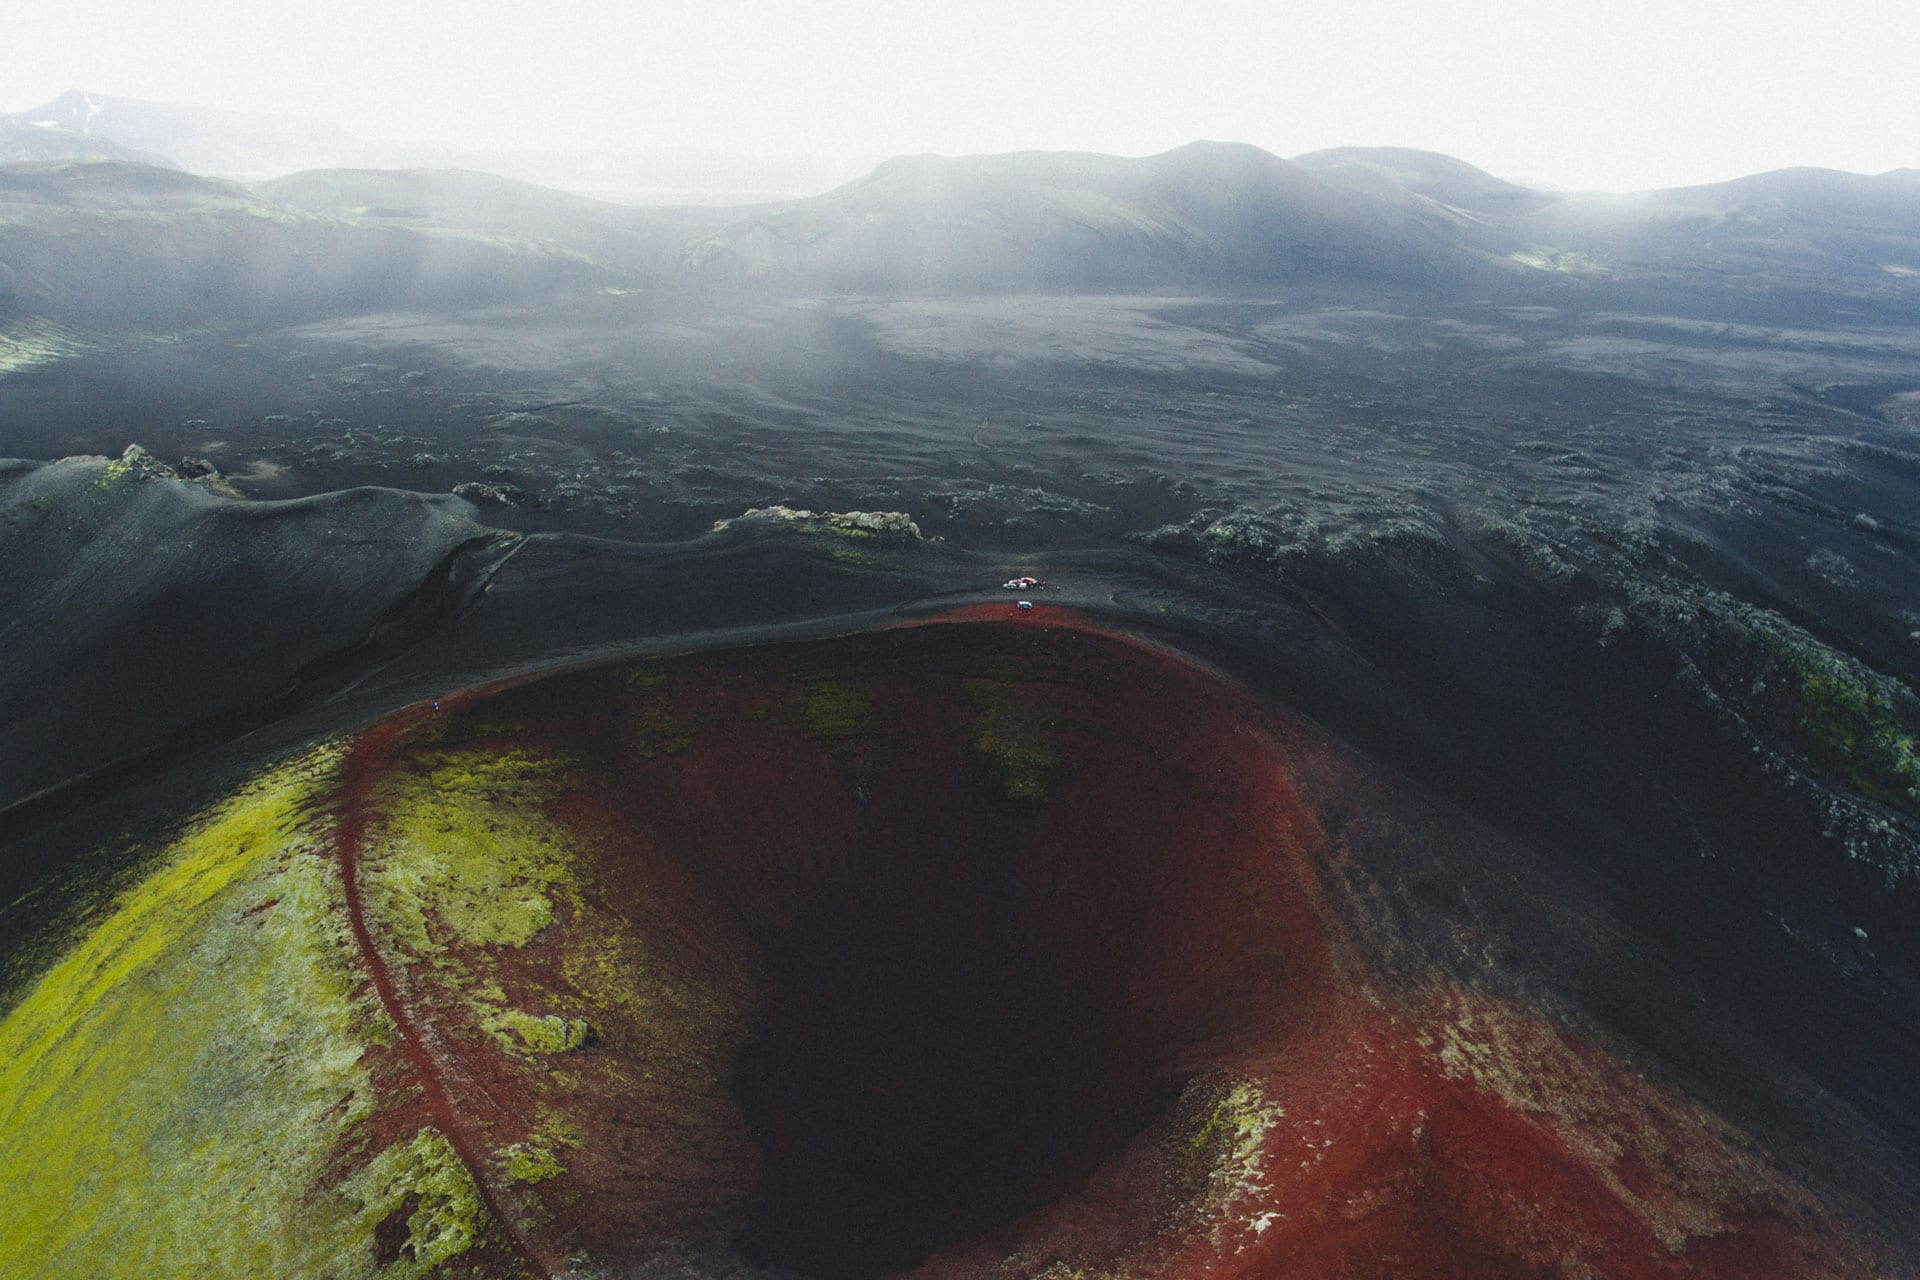 Aerial view over Crater in Landmannalaugar in the highlands of Iceland